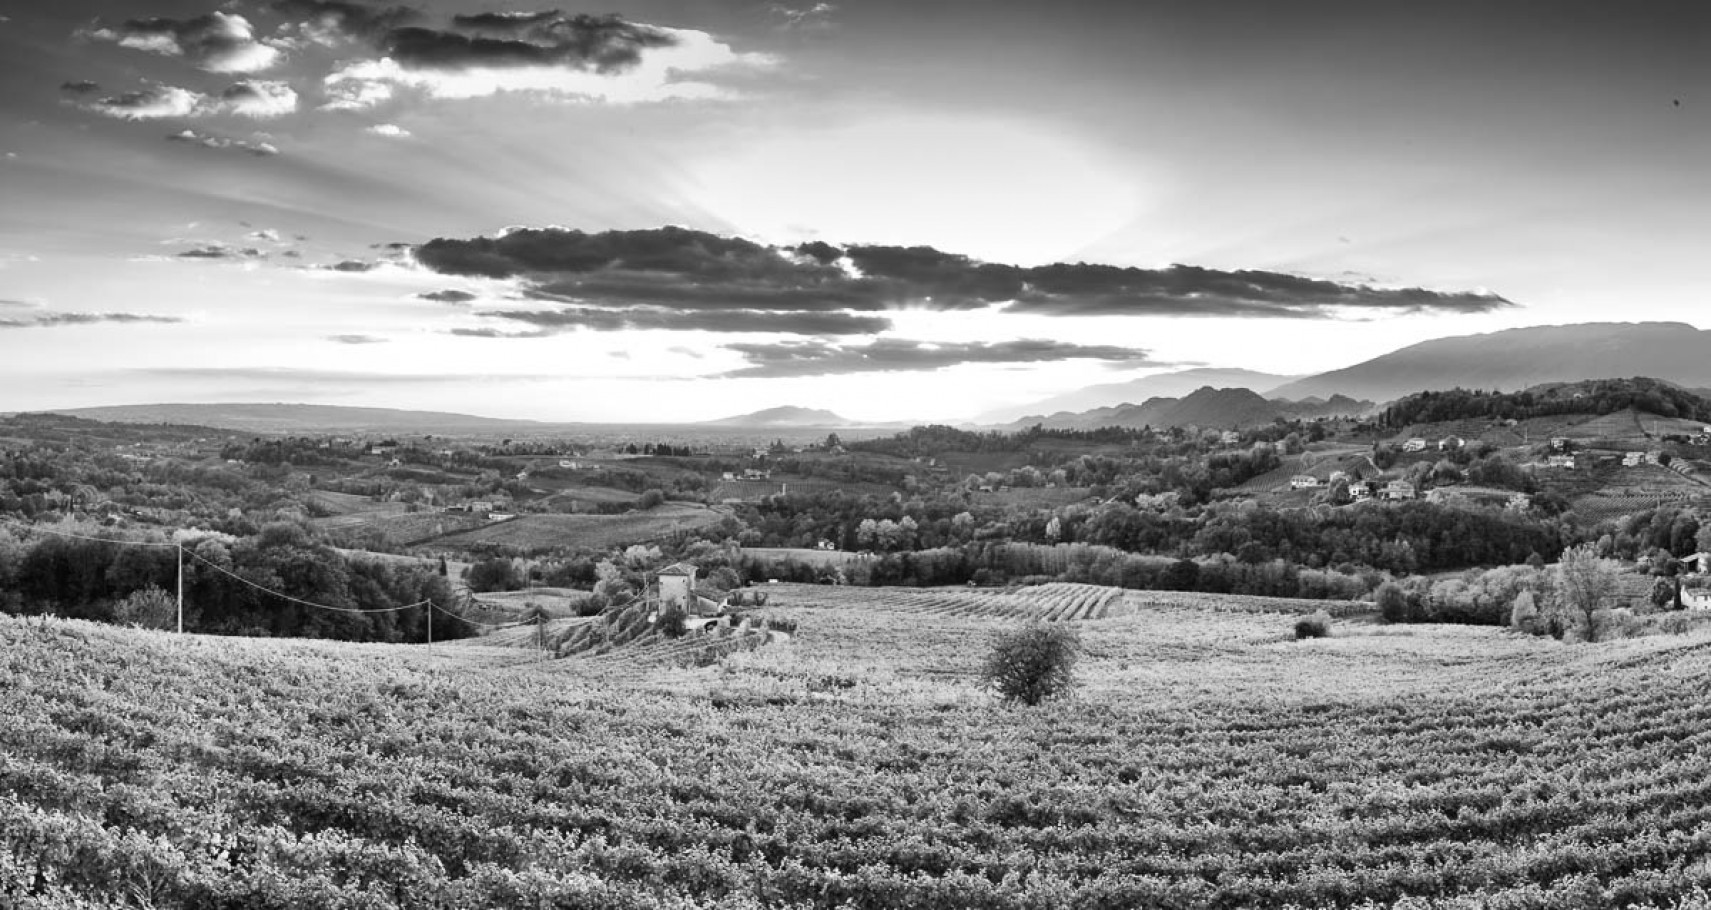 #blackwhite #landscape #prosecco #sunset #veneto #wine #fineart #bwstylesgf #bnw_captures #bnw_universe #insta_bw #bwmasters #igfotogram_bw #excellent_bnw #igblacknwhite #blackandwhite_perfection #bnw_demand #bnwmood #bnw_planet #bnw_society #bnw_magazine #bnw_globe #bnw_of_our_world #top_bnw #bw_lovers #bw_photooftheday #bw_crew #bwstyleoftheday #noir_vision #bnw_diamond #flair_bw #rsa_bnw #bnw_life #bnw_guru #love_bnw #jj_blackwhite #bwsquare